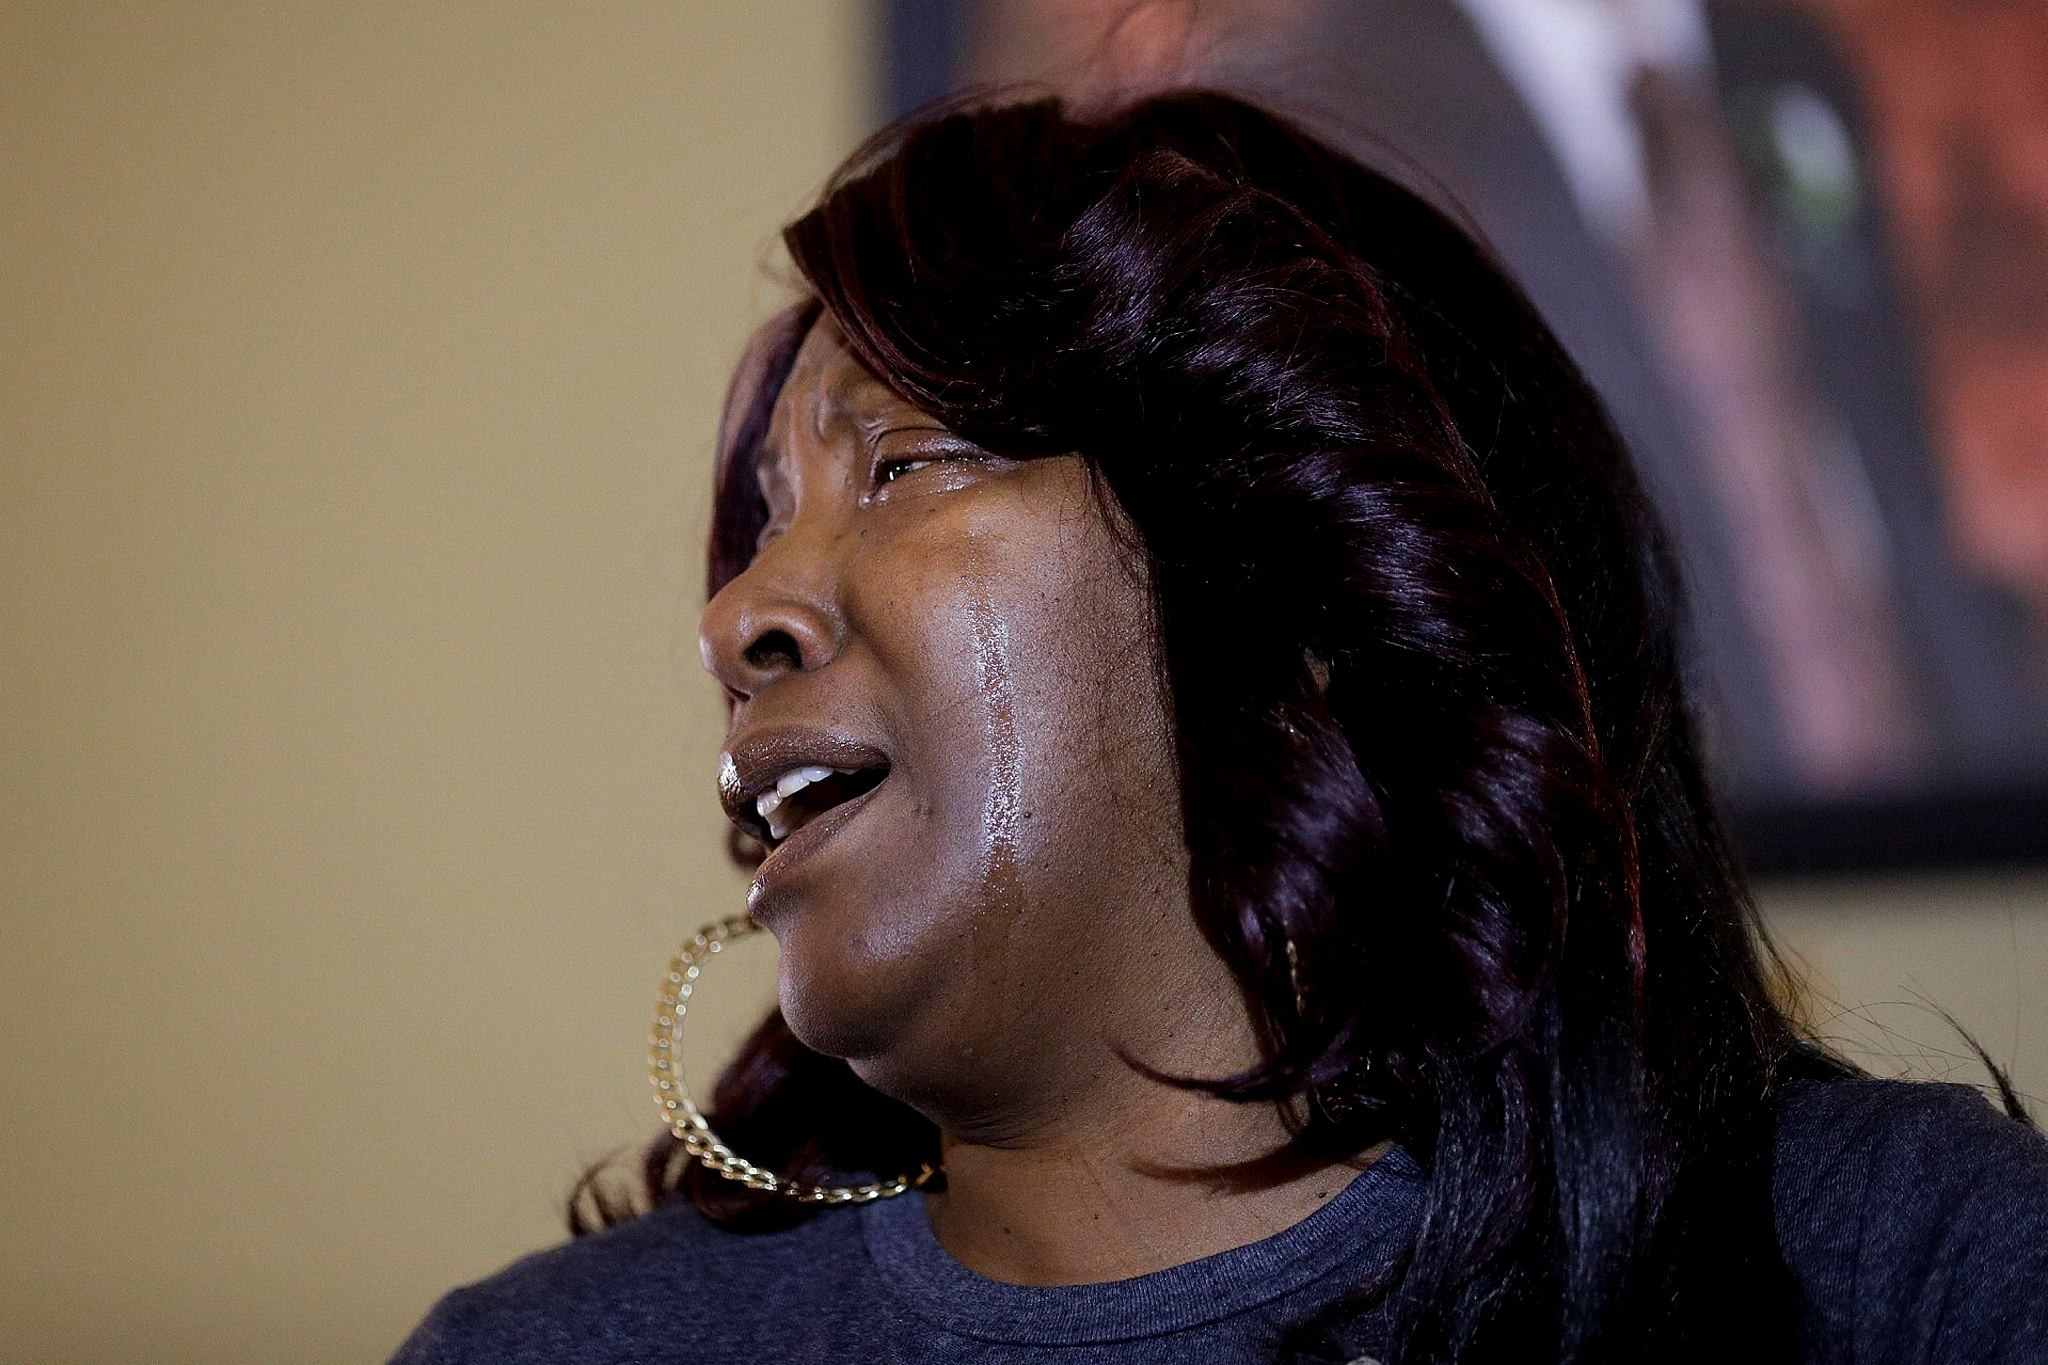 Ezell Ford's mother, Tritobia Ford, sheds tears while speaking at a news conference Tuesday, Jan. 24, 2017, in Los Angeles. (AP Photo)